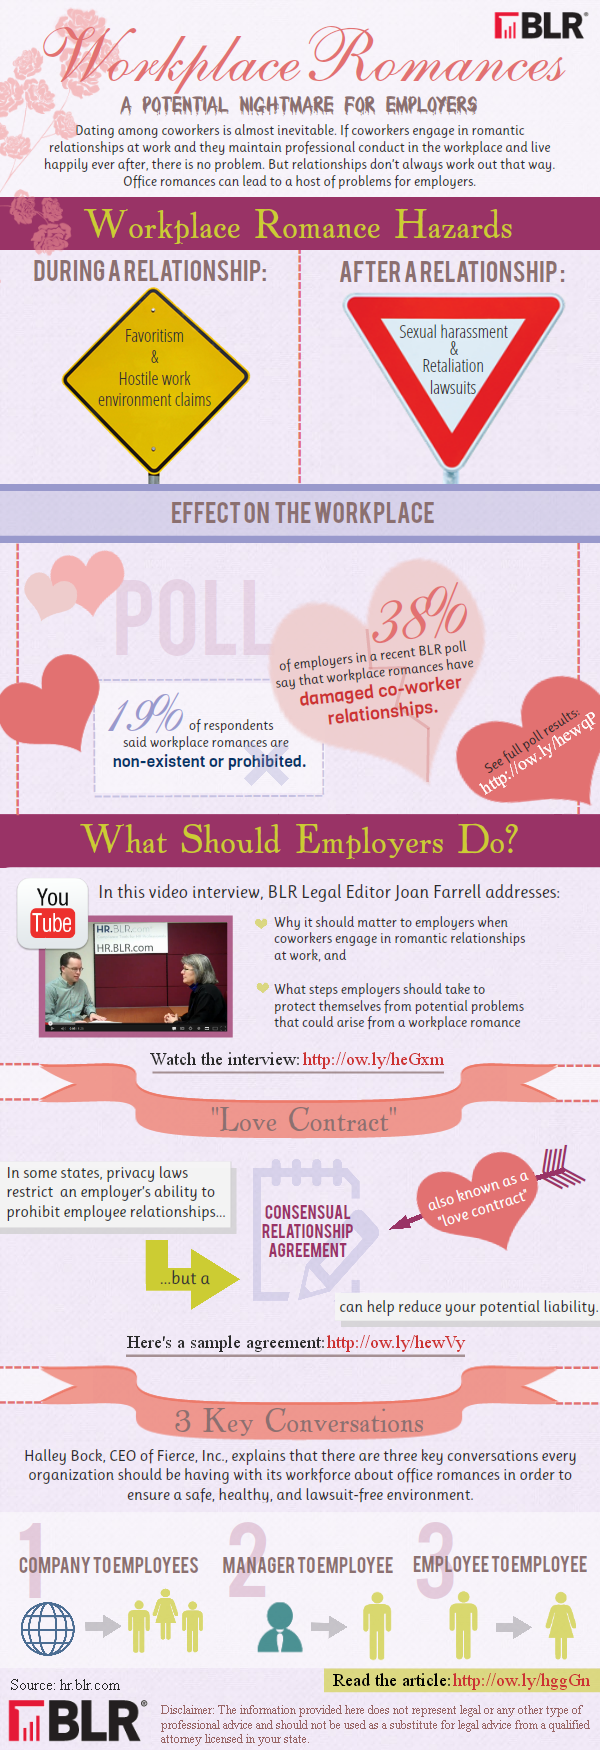 Facts about Workplace Romance